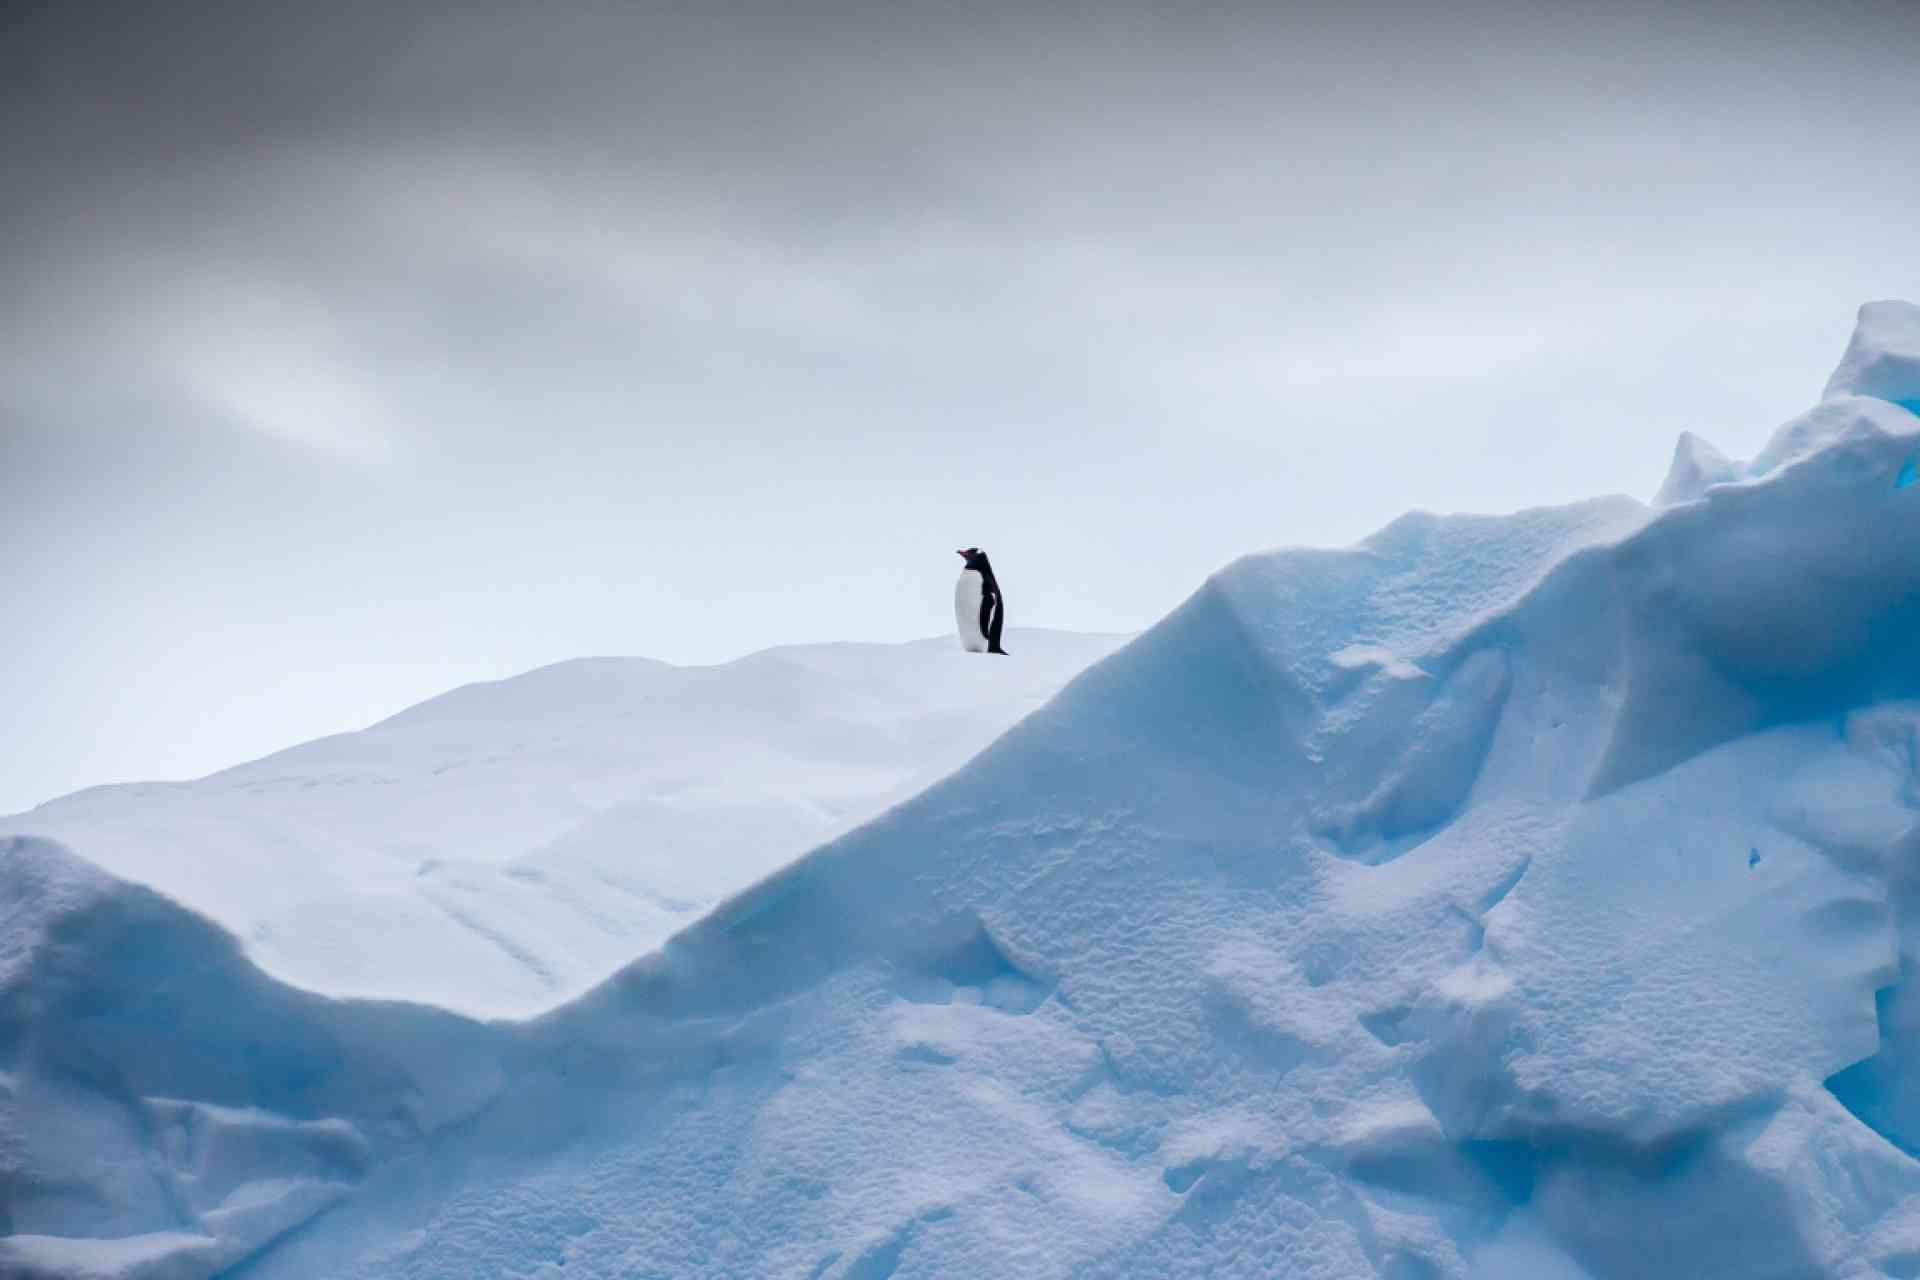 Gentoo penguin in Antarctica by David Hein